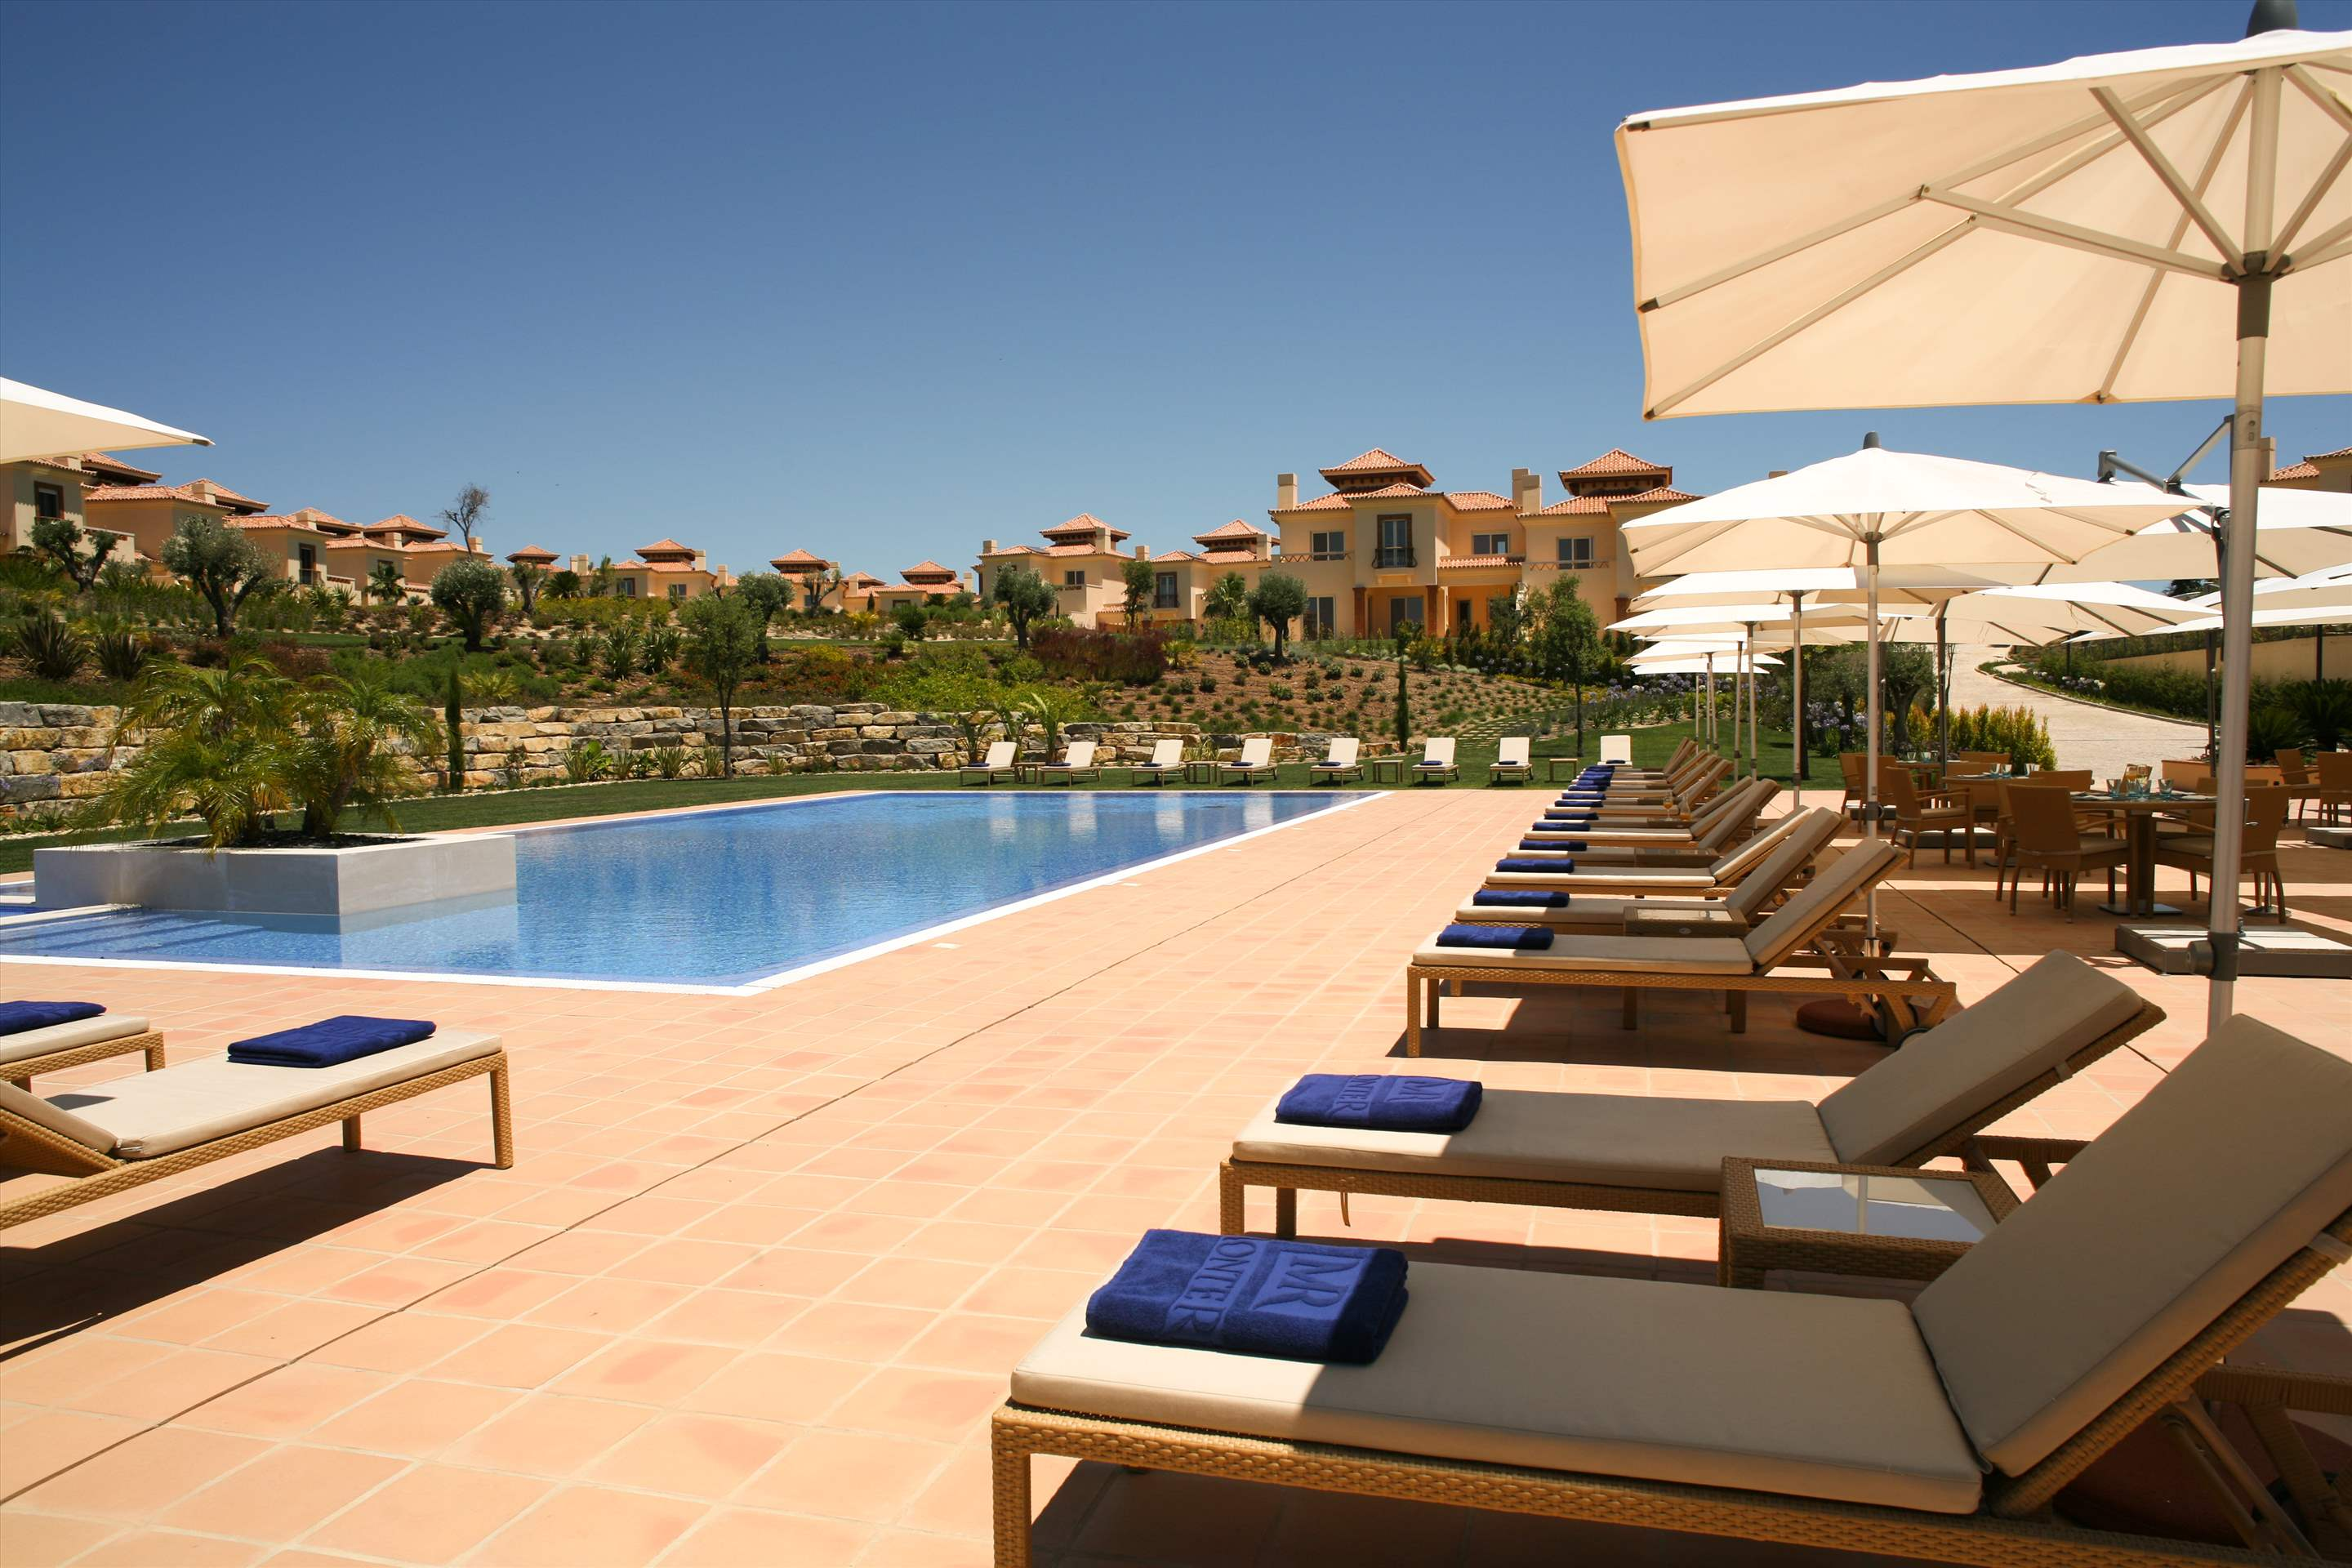 Monte Rei Three Bedroom Villa with Private Pool, 3 bedroom villa in Monte Rei Country Club, Algarve Photo #11